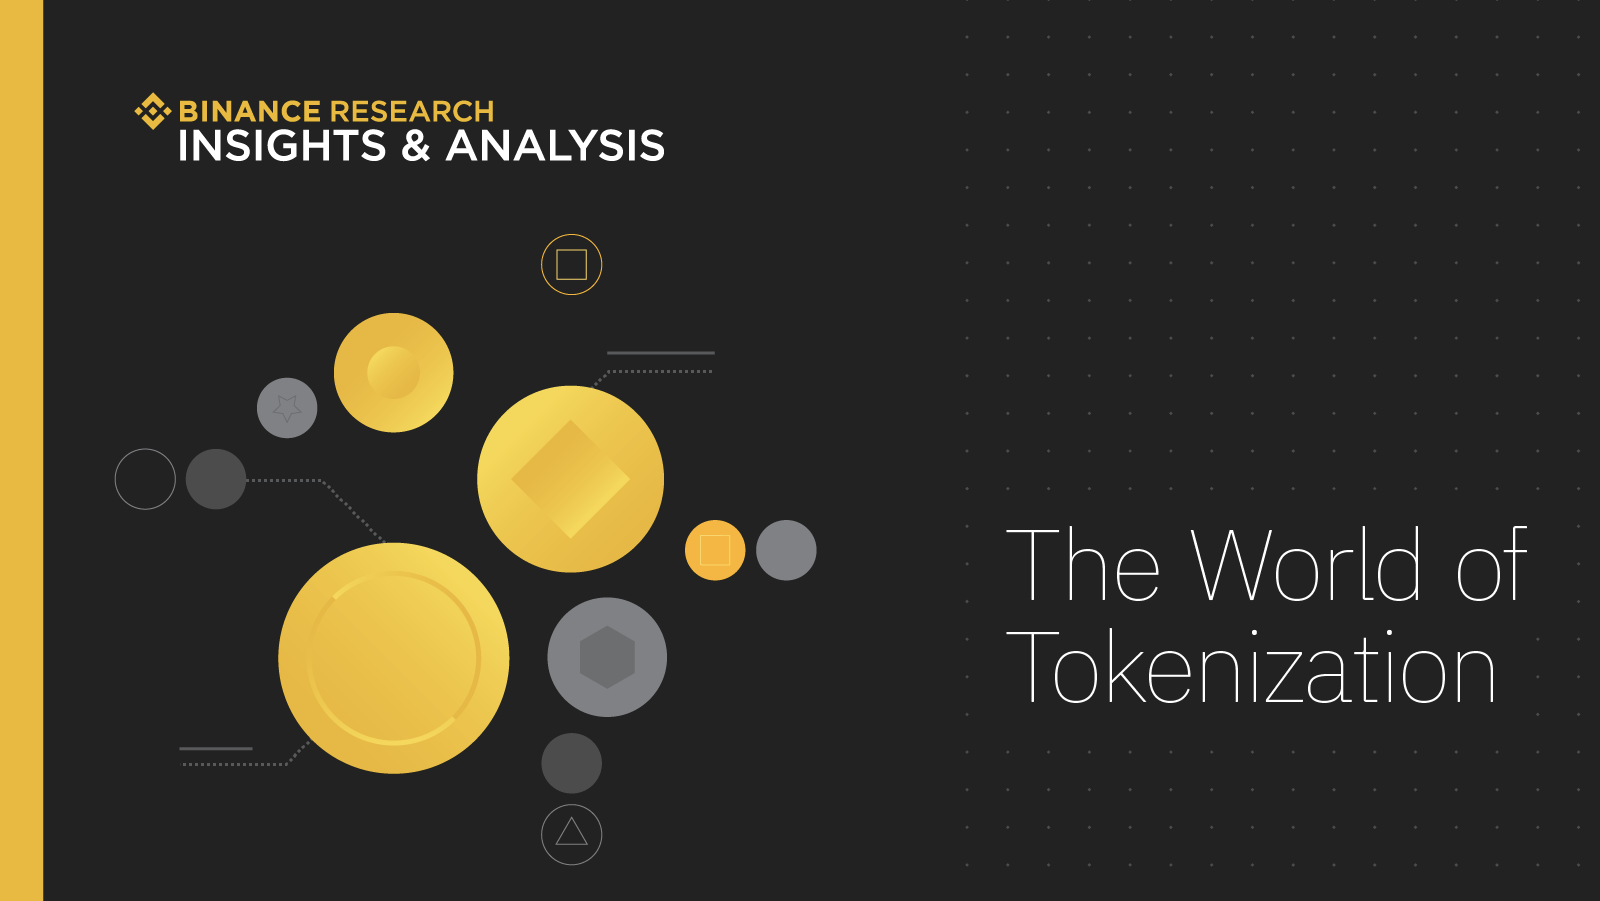 Binance Research on New Tokenization Report: Too Early to